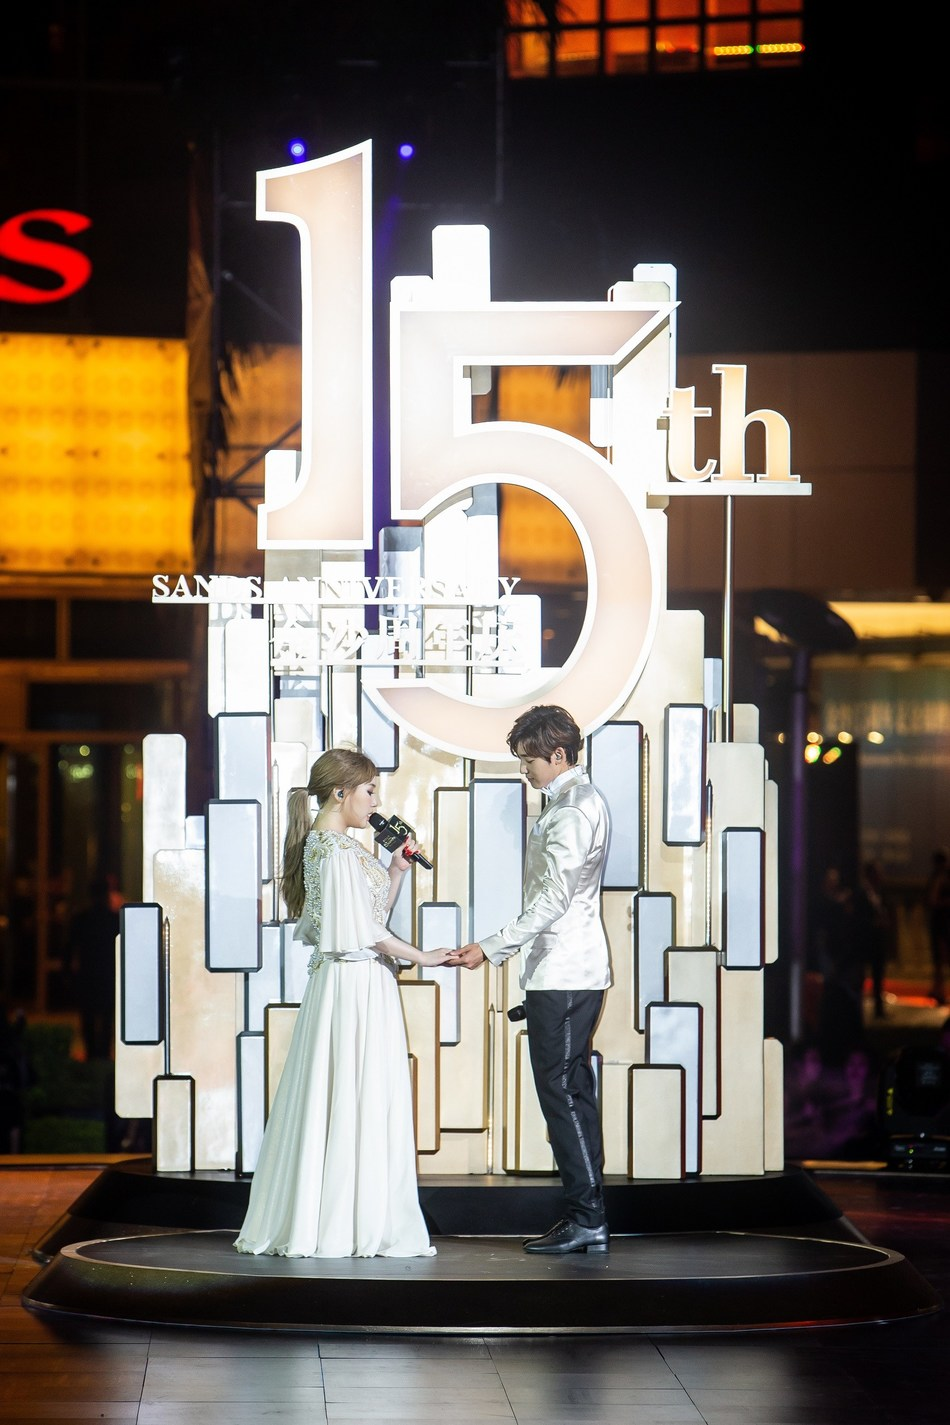 """A waterfall-styled pyrotechnic display in front of Sands Macao's façade Thursday illuminates the night in front of the hotel and entertainment complex's outdoor fountain in celebration of the property's 15th anniversary, while Korean singers Kevin Woo and Jimin Park sing """"Rewrite the Stars"""" from the Grammy-Award-winning soundtrack from the film """"The Greatest Showman."""""""